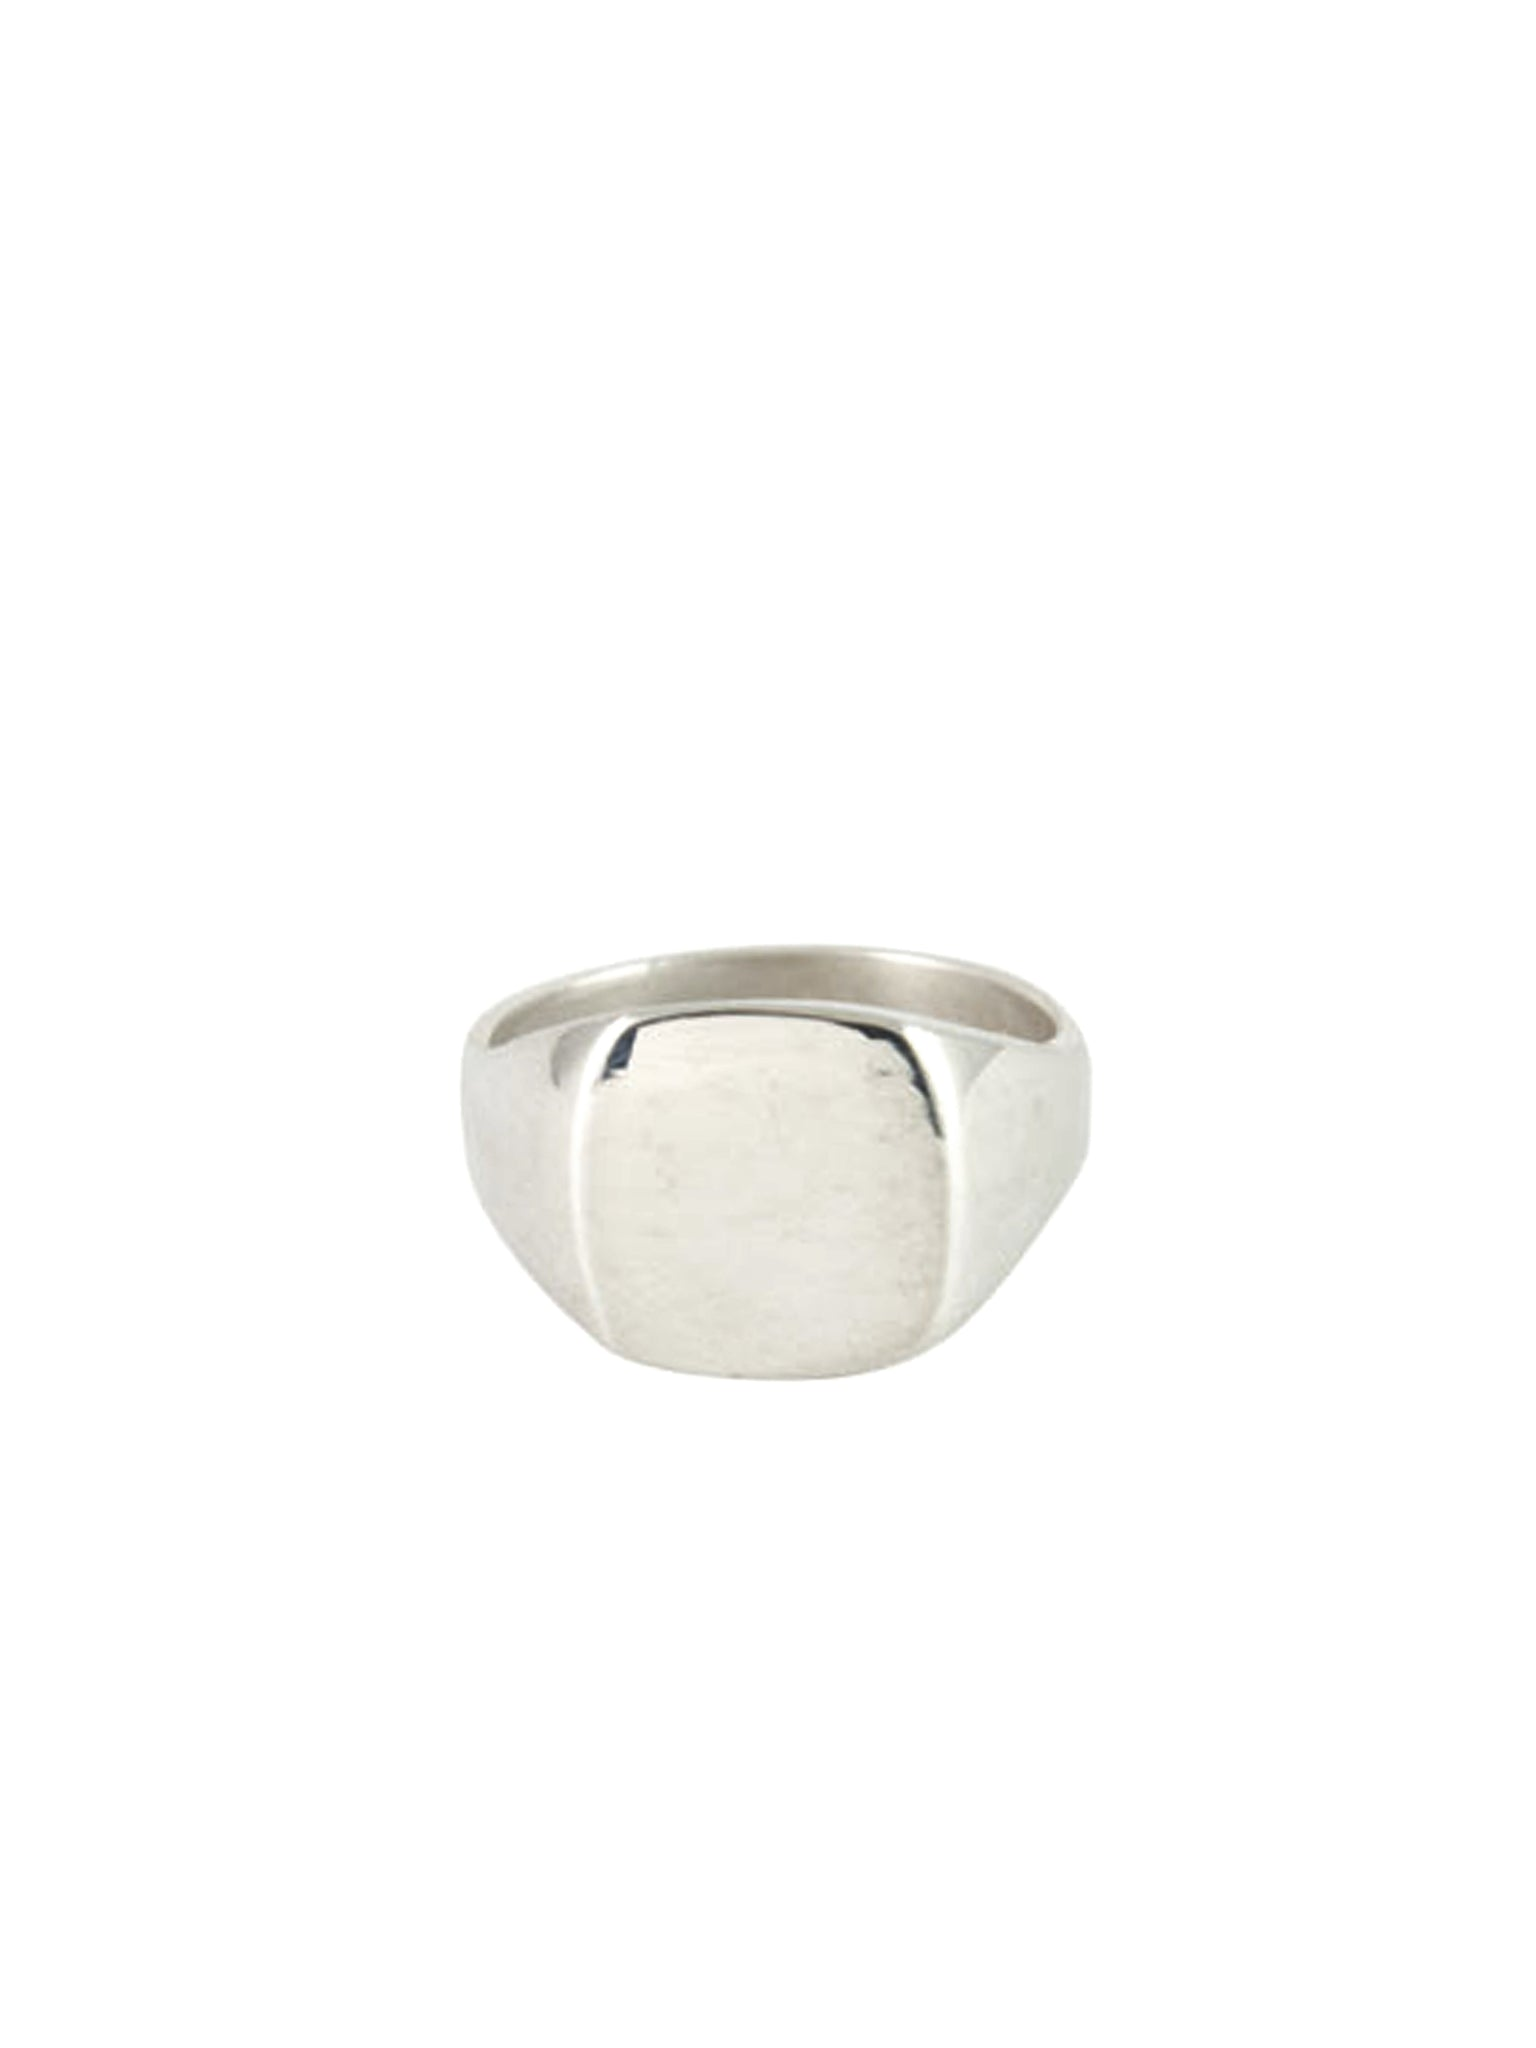 Initial Ring / Silver